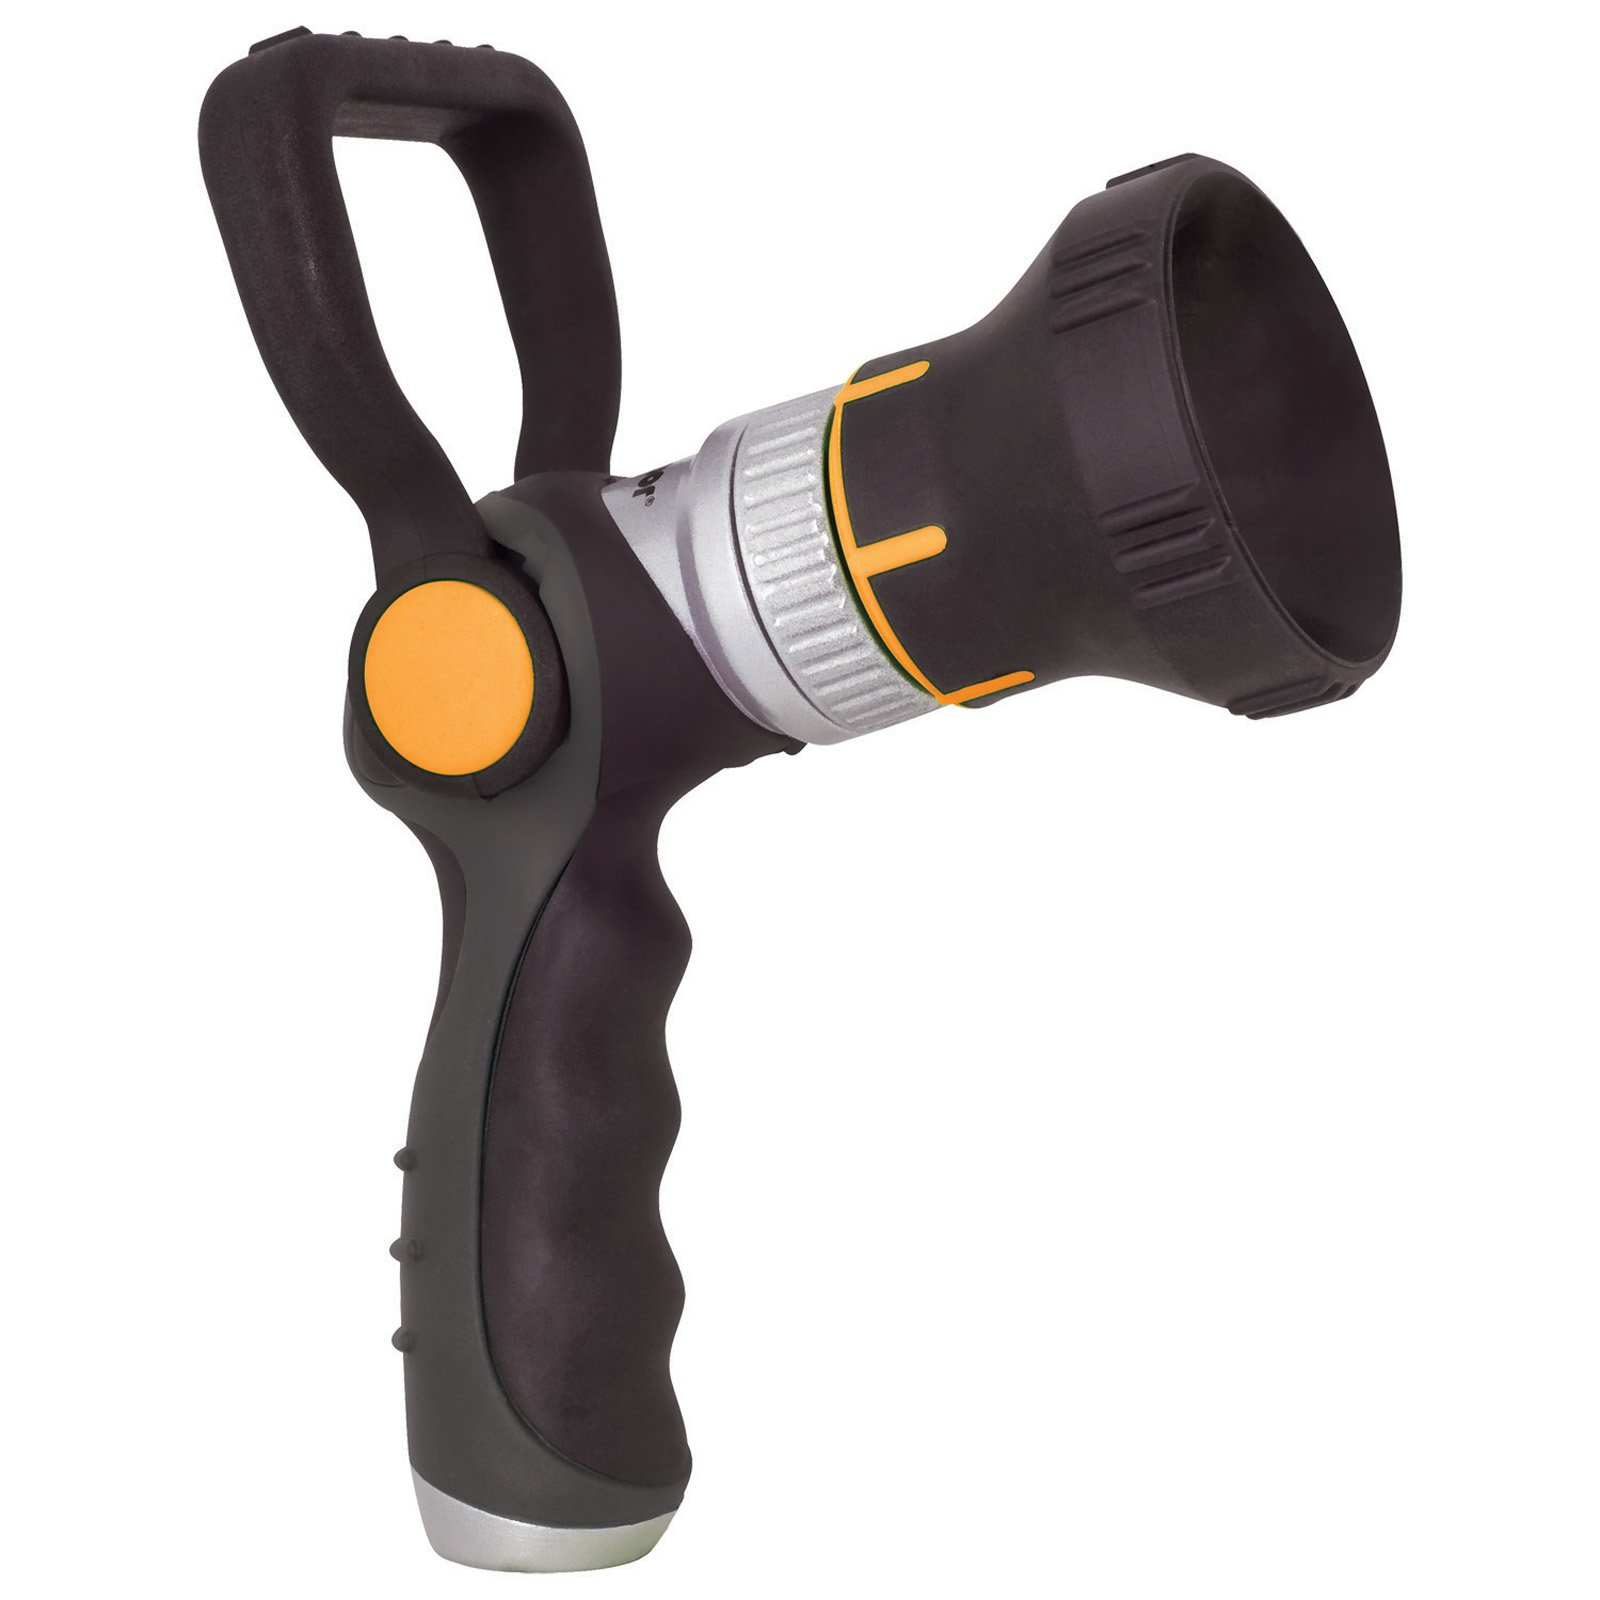 Melnor Inc. Ergo Metal Fire Nozzle with Rubberized Grip